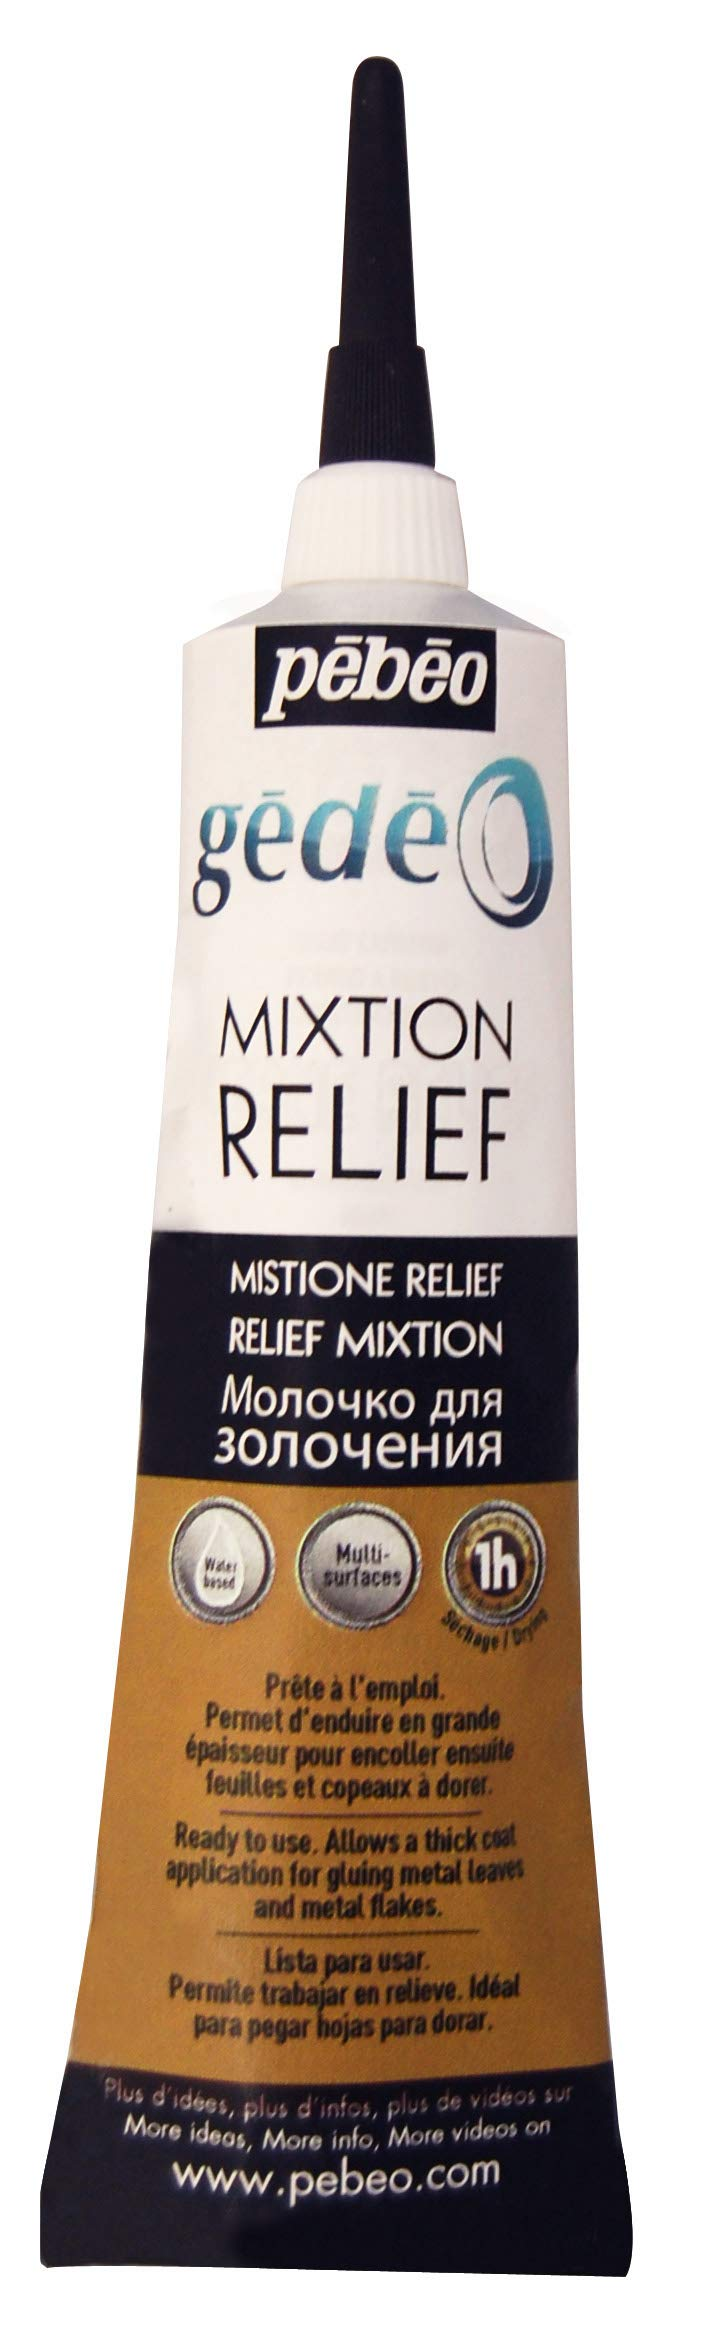 PEBEO Gedeo Mixtion Relief Gilding Paste, 37 ml Tube